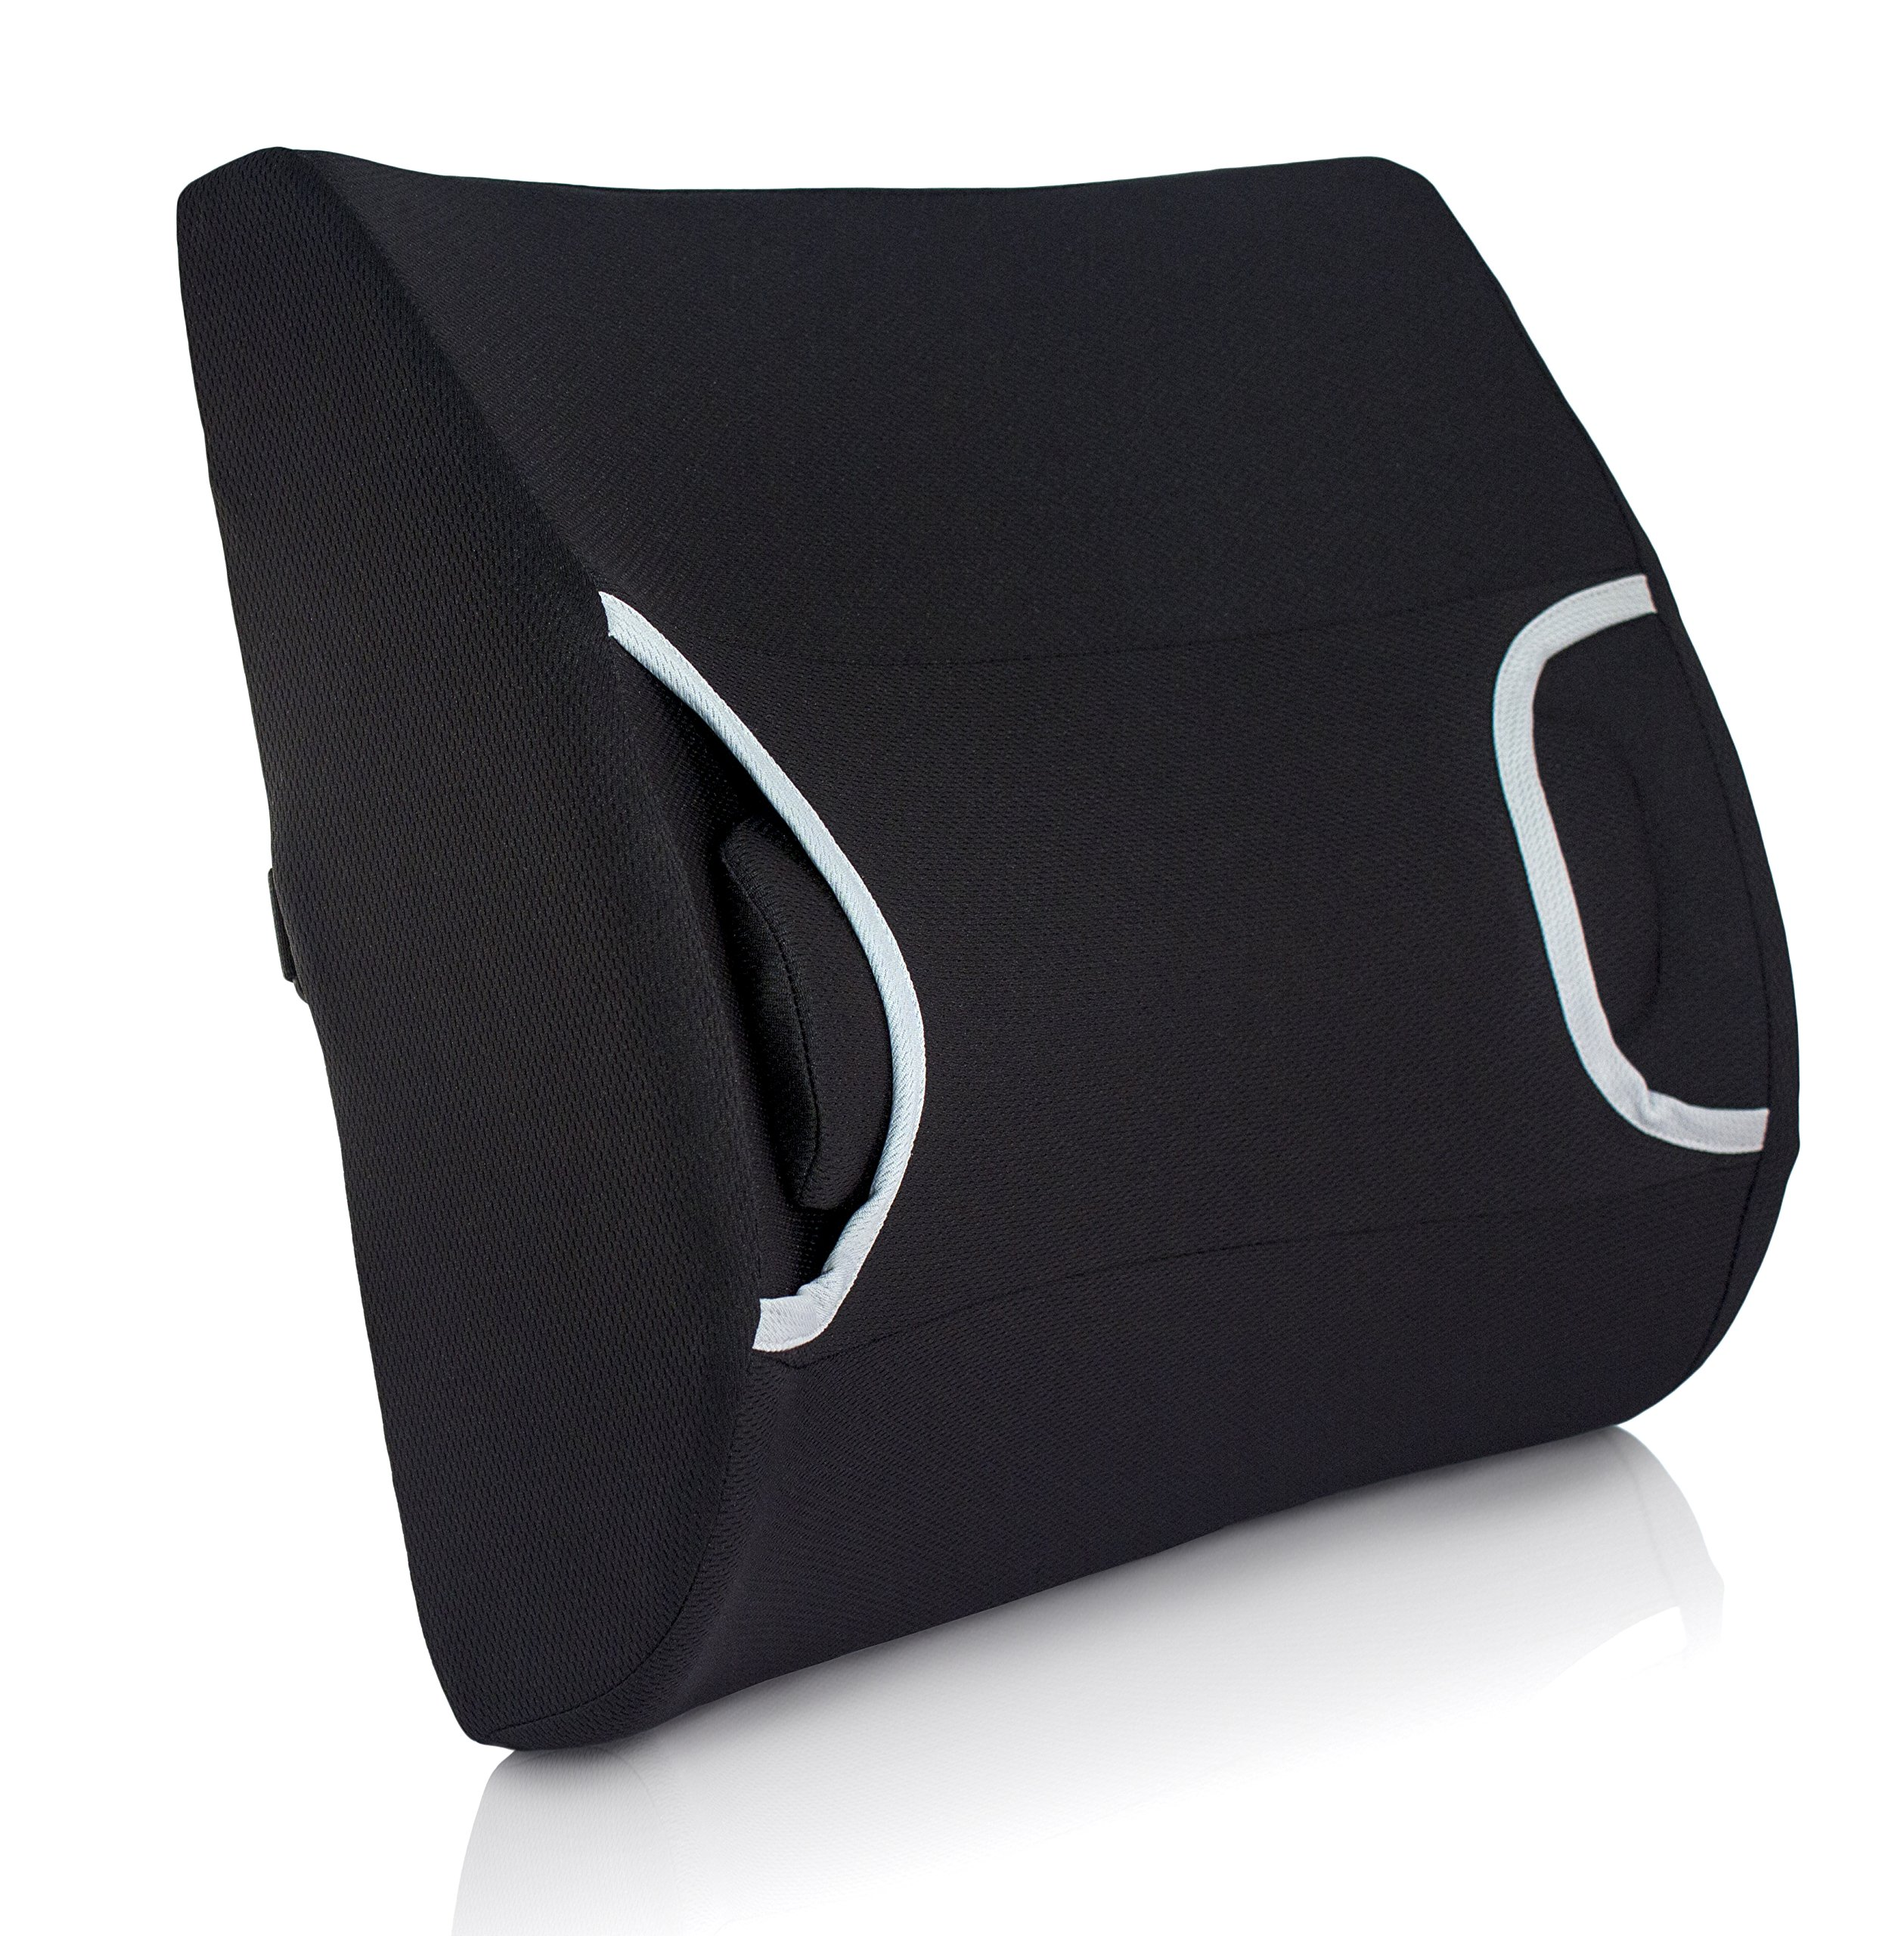 Vaunn Medical Lumbar Back Support Cushion Pillow with Warm/Cool Gel Pad and Removable Firm Insert by Vaunn (Image #2)